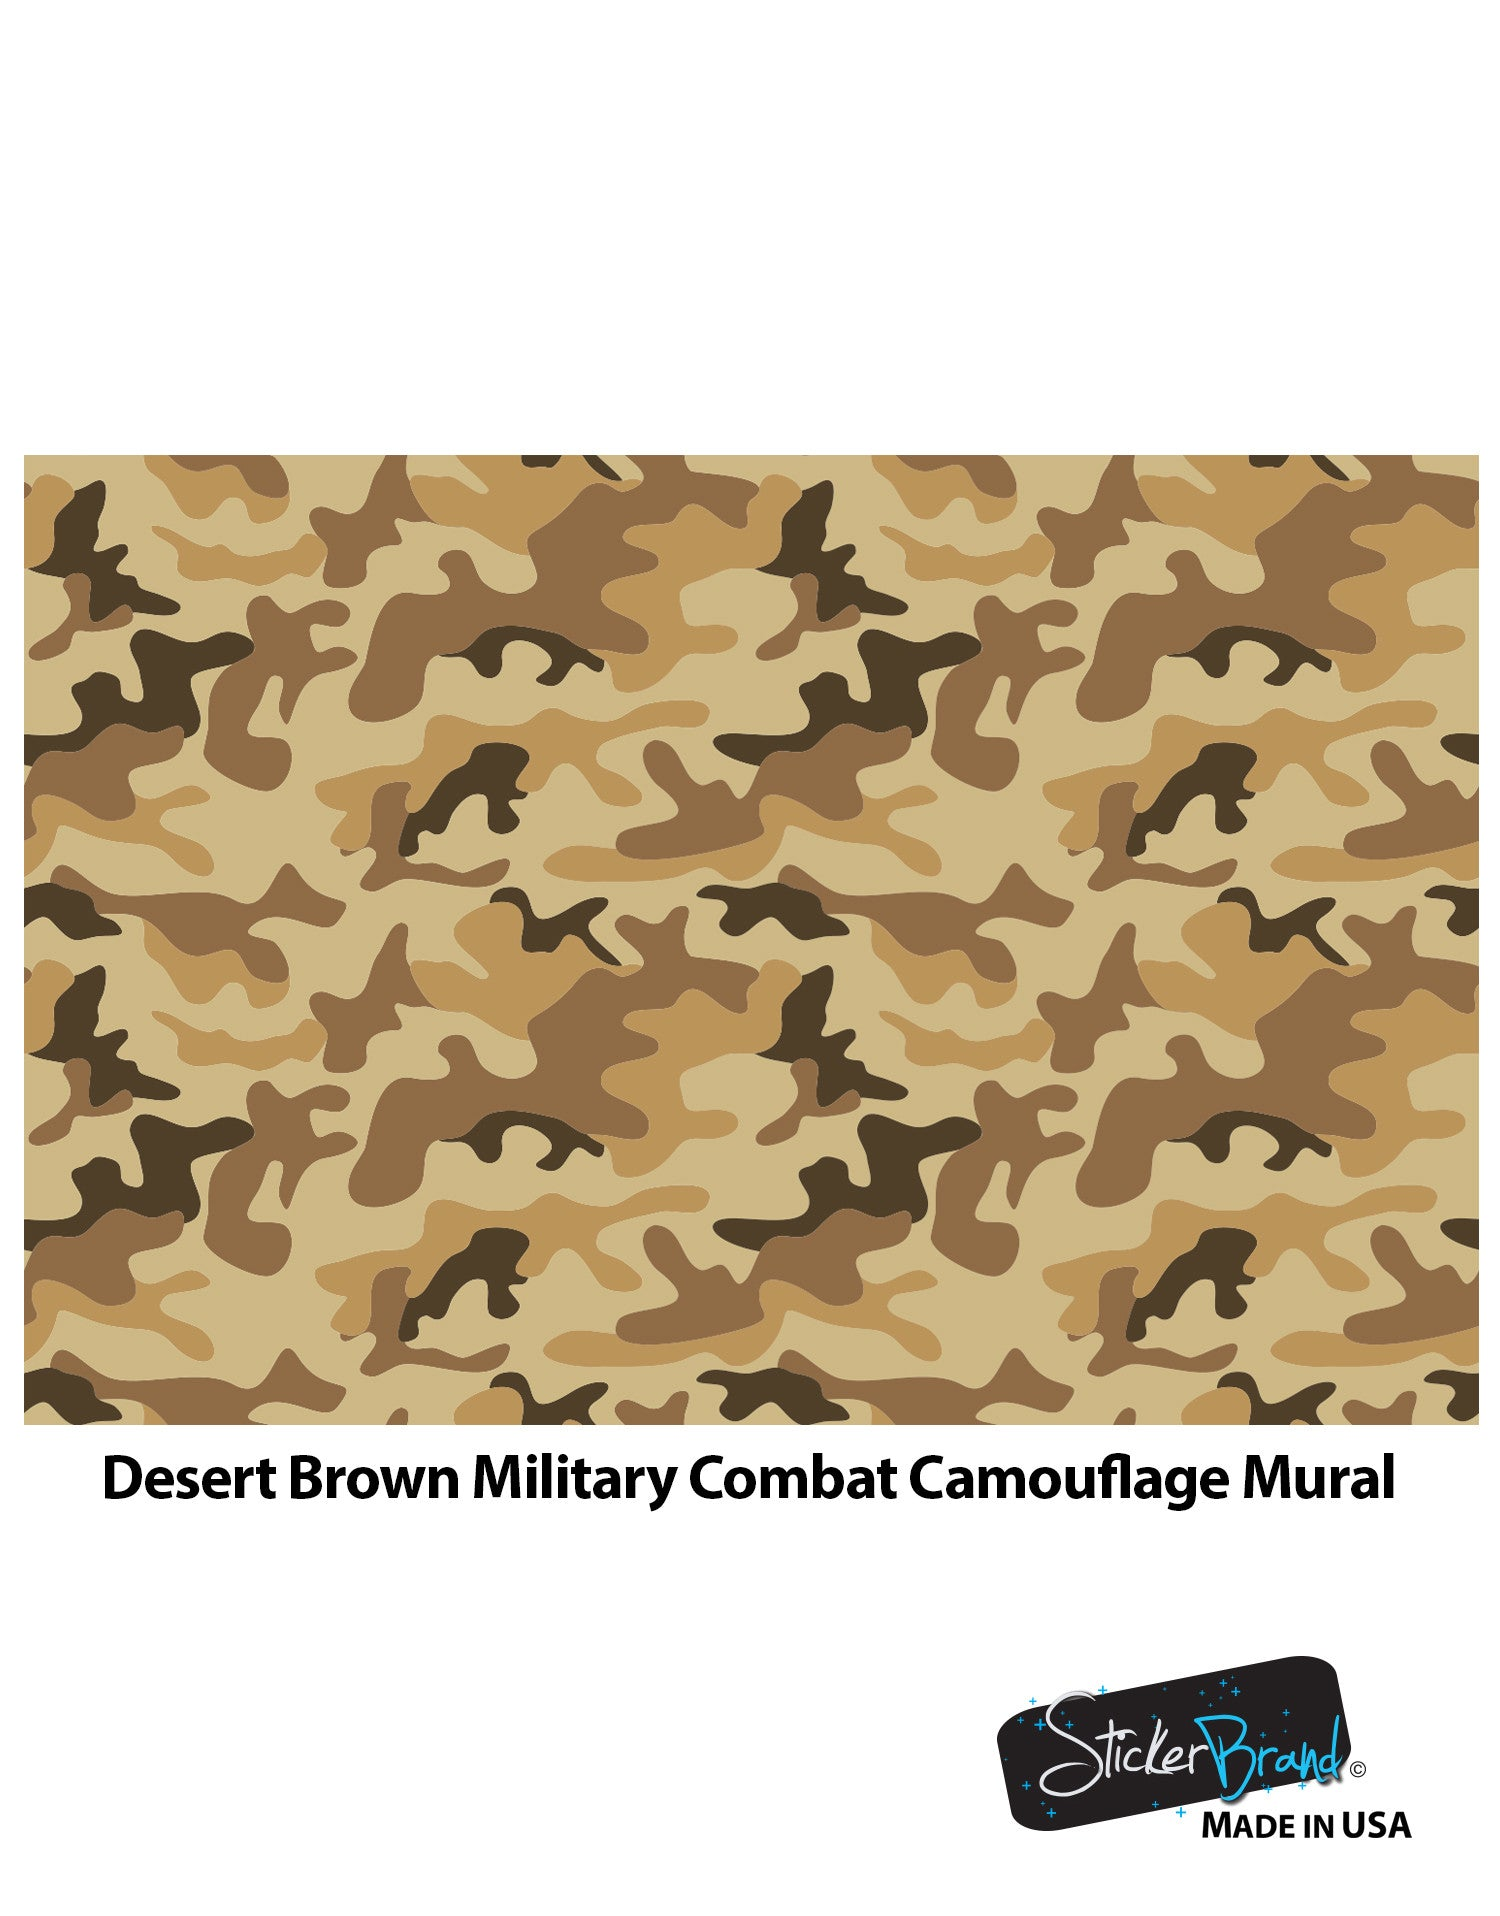 Desert brown military camo camouflage wall mural 6062 amipublicfo Choice Image